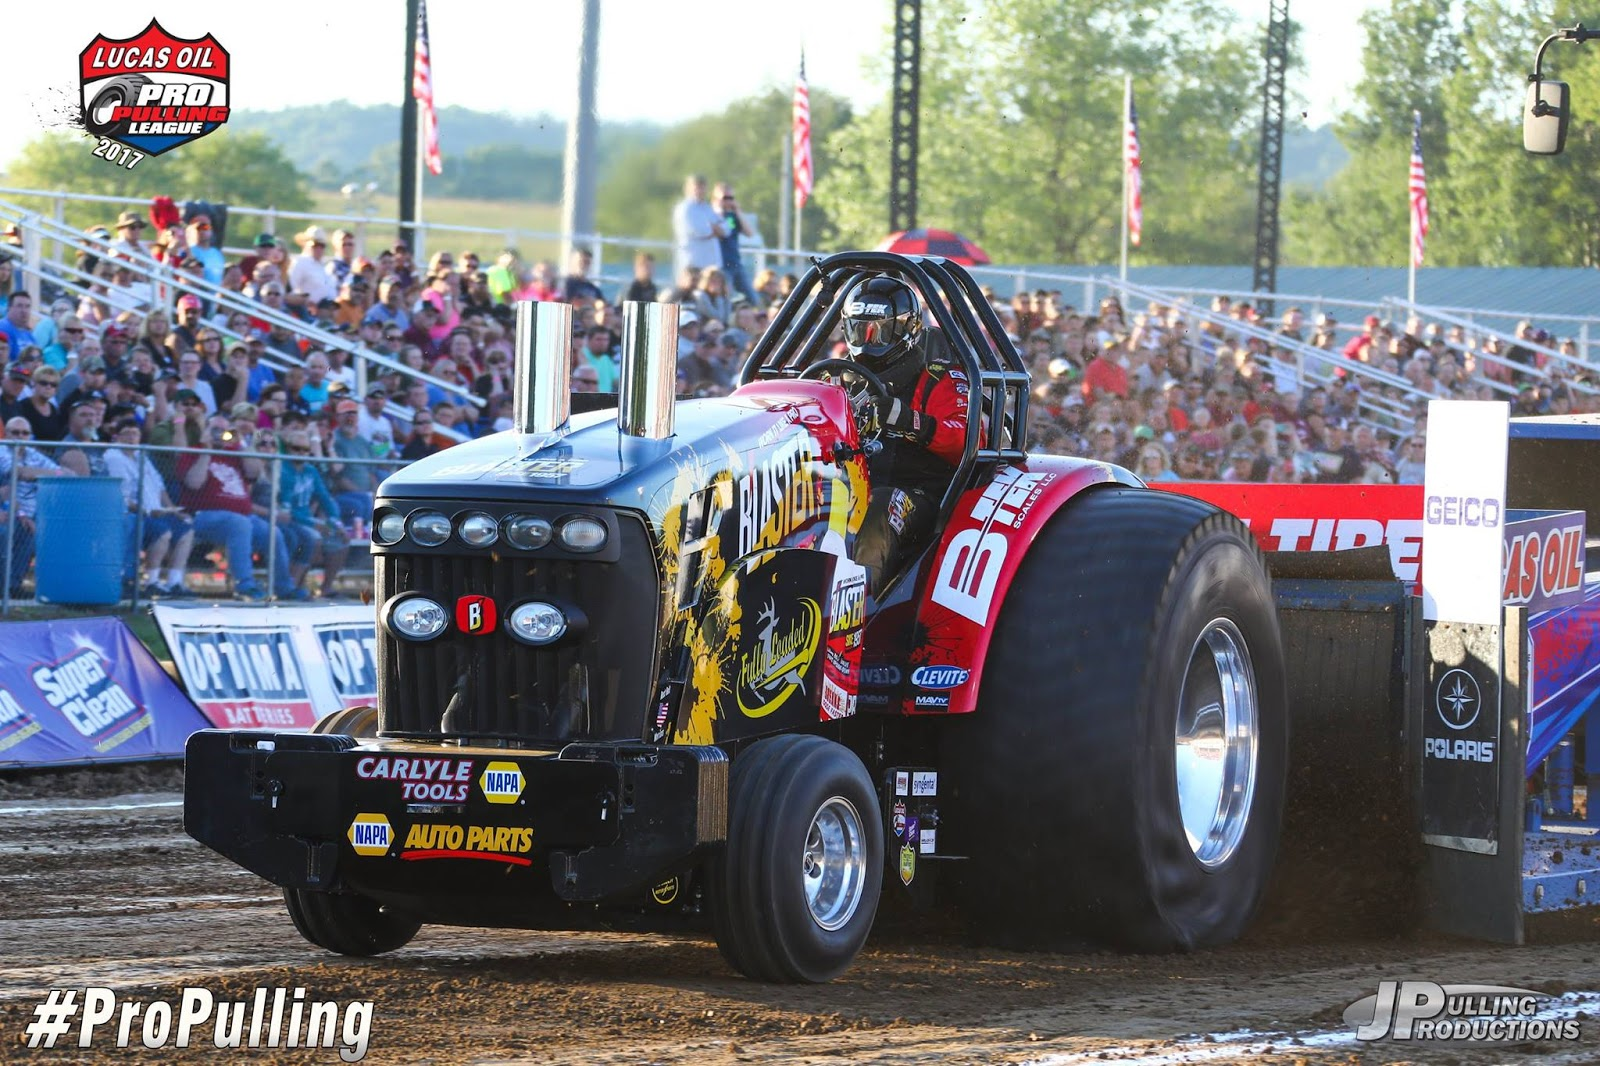 Super Pro Stock Pulling Tractor : Tractor pulling news pullingworld lucas oil pro